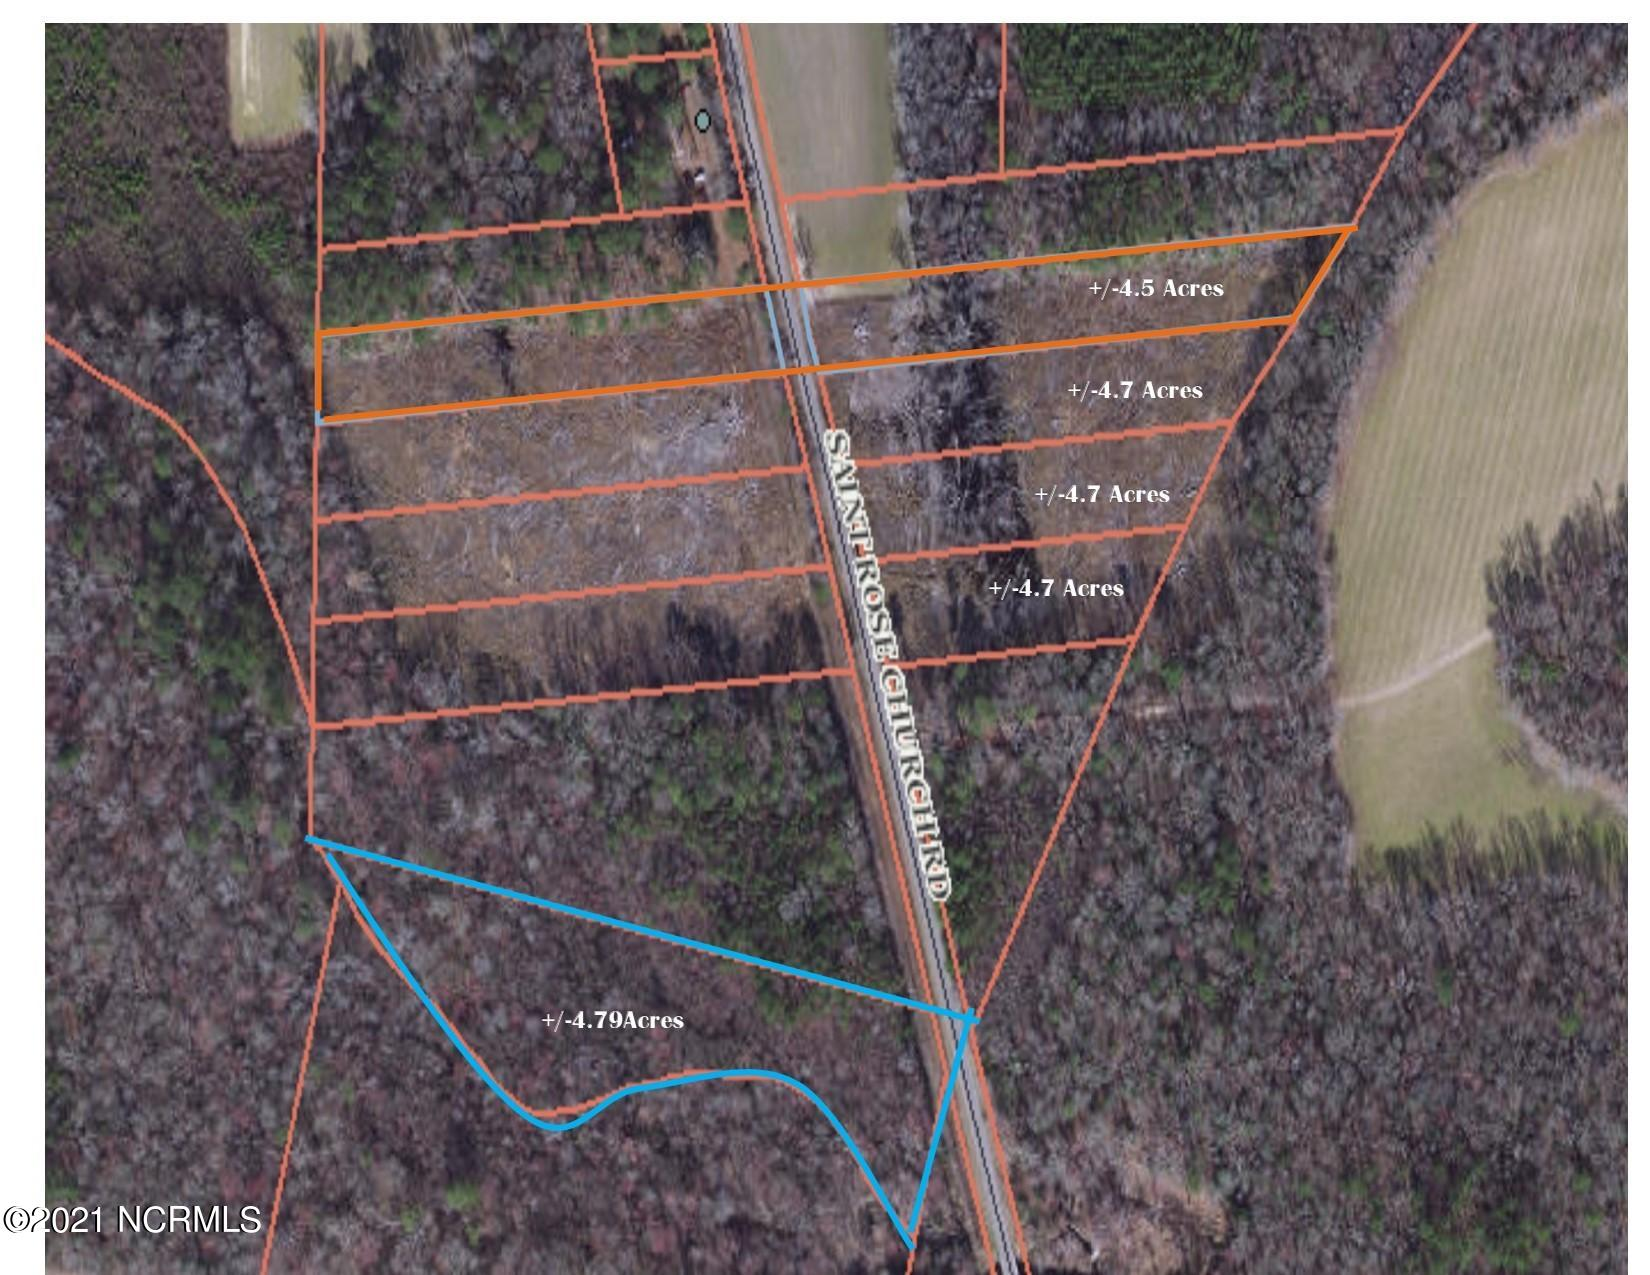 000 St. Rose Church Rd., Wilson, North Carolina 27893, ,Undeveloped,For sale,St. Rose Church Rd.,100248656